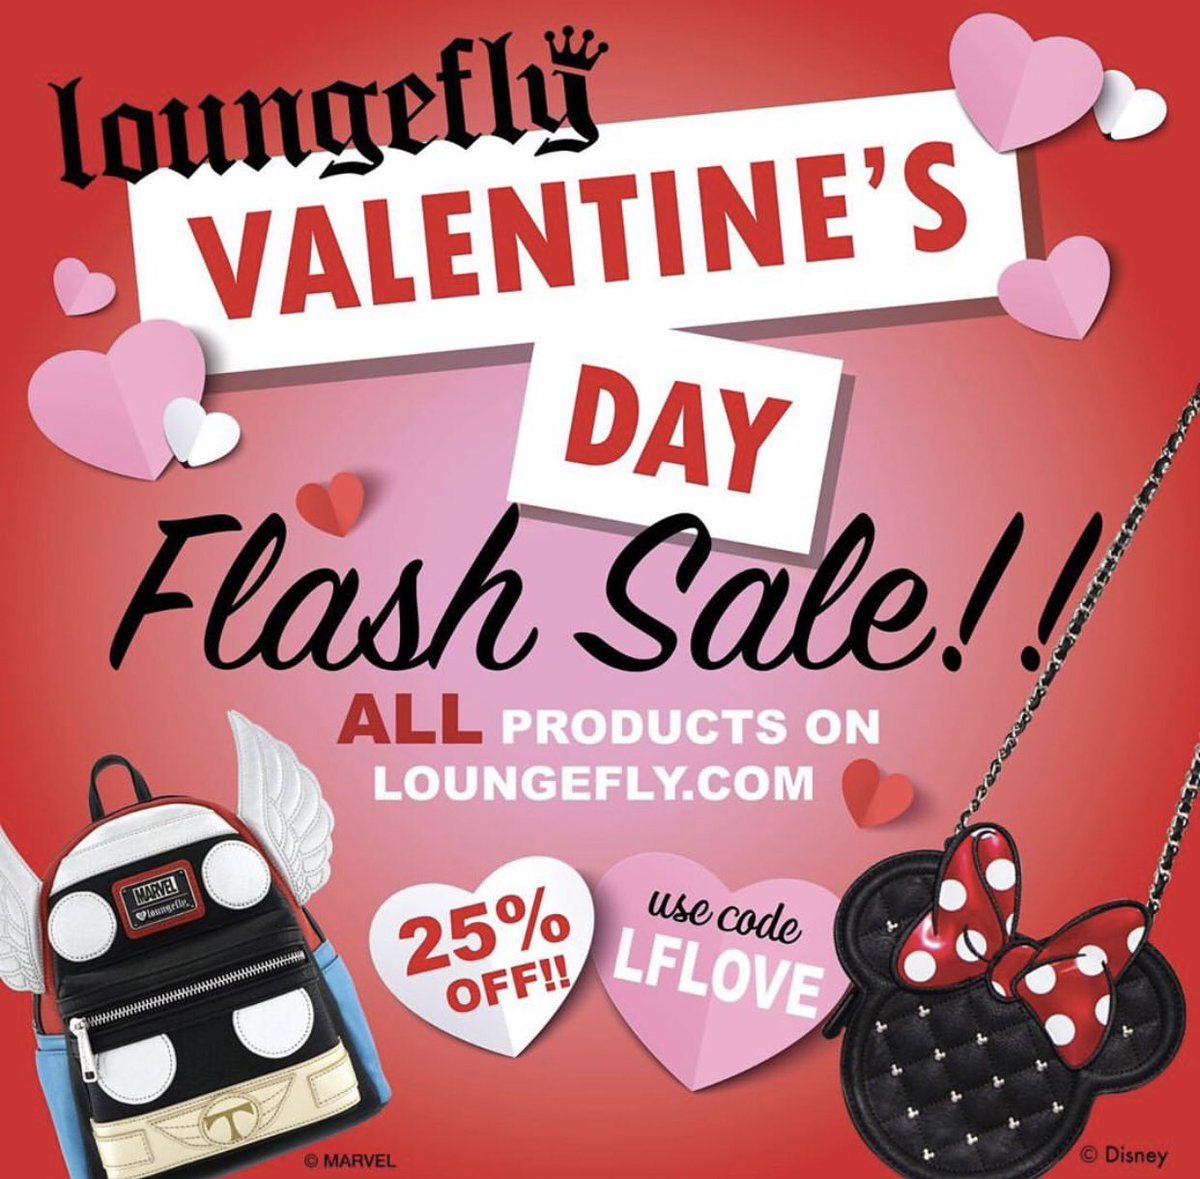 a50515f400d Hey Loungefly fans! Happy  ValentinesDay! Shop http   Loungefly.com